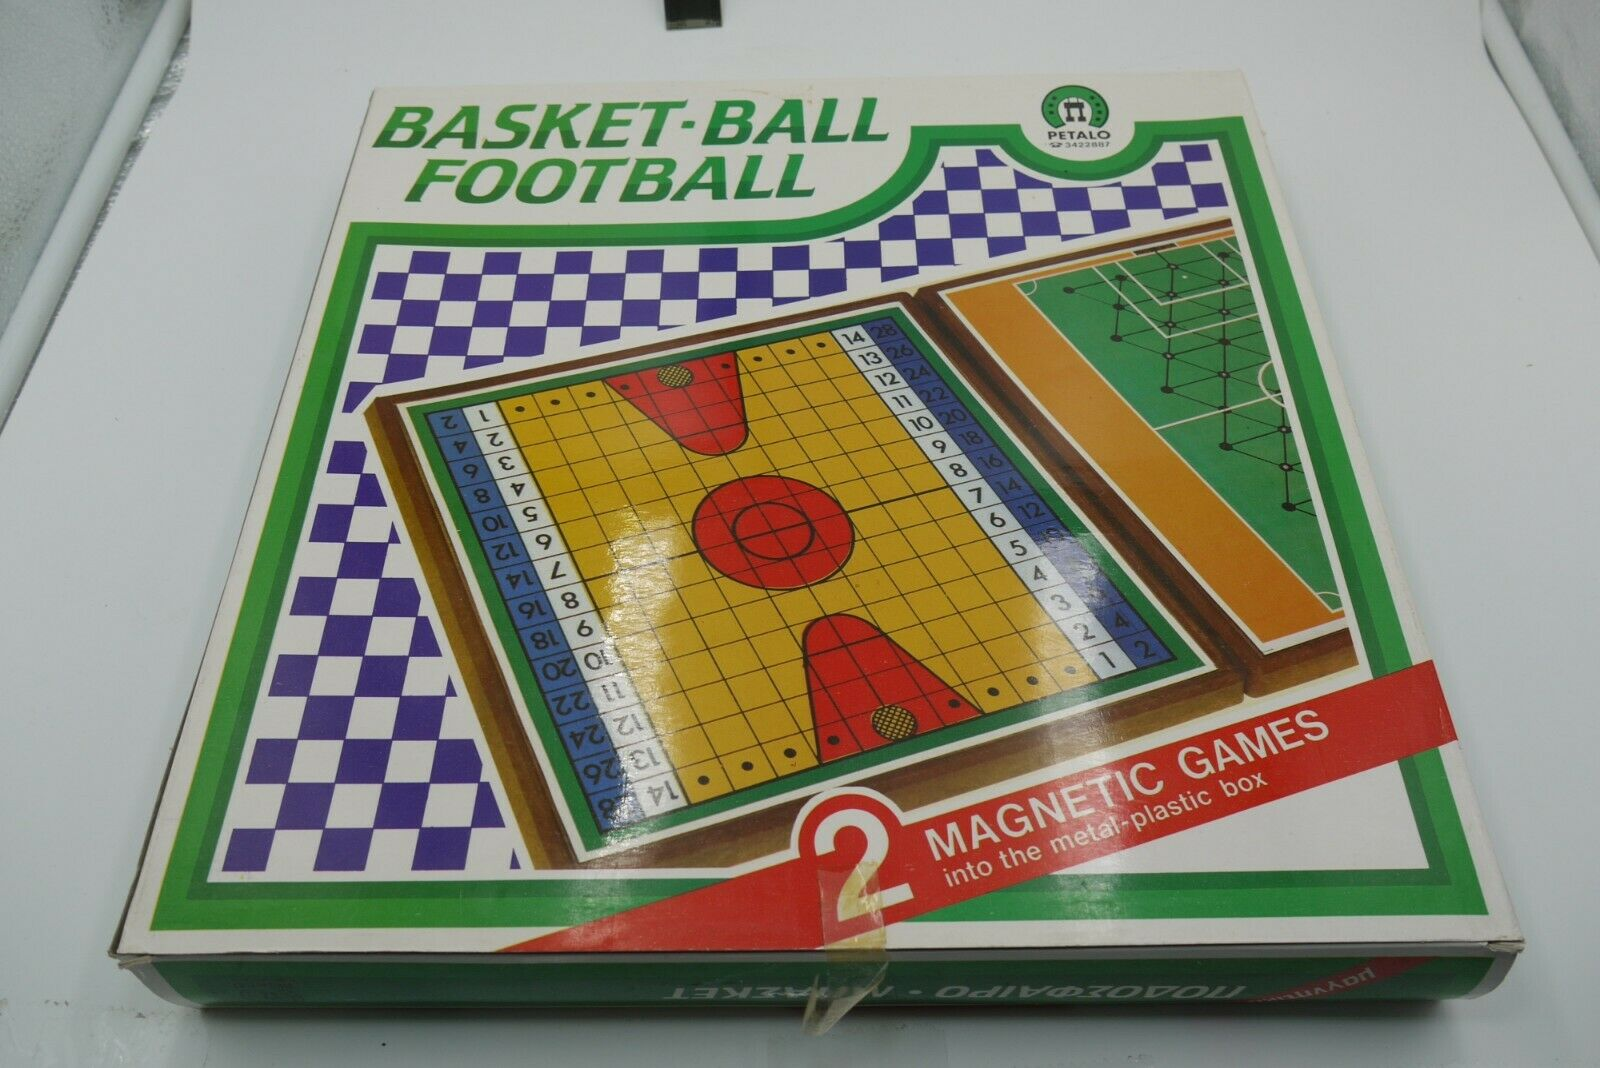 VINTAGE 80's MAGNETIC GREEK BOARD GAME BASKETBALL FOOTBALL PETALO LARGE SIZE